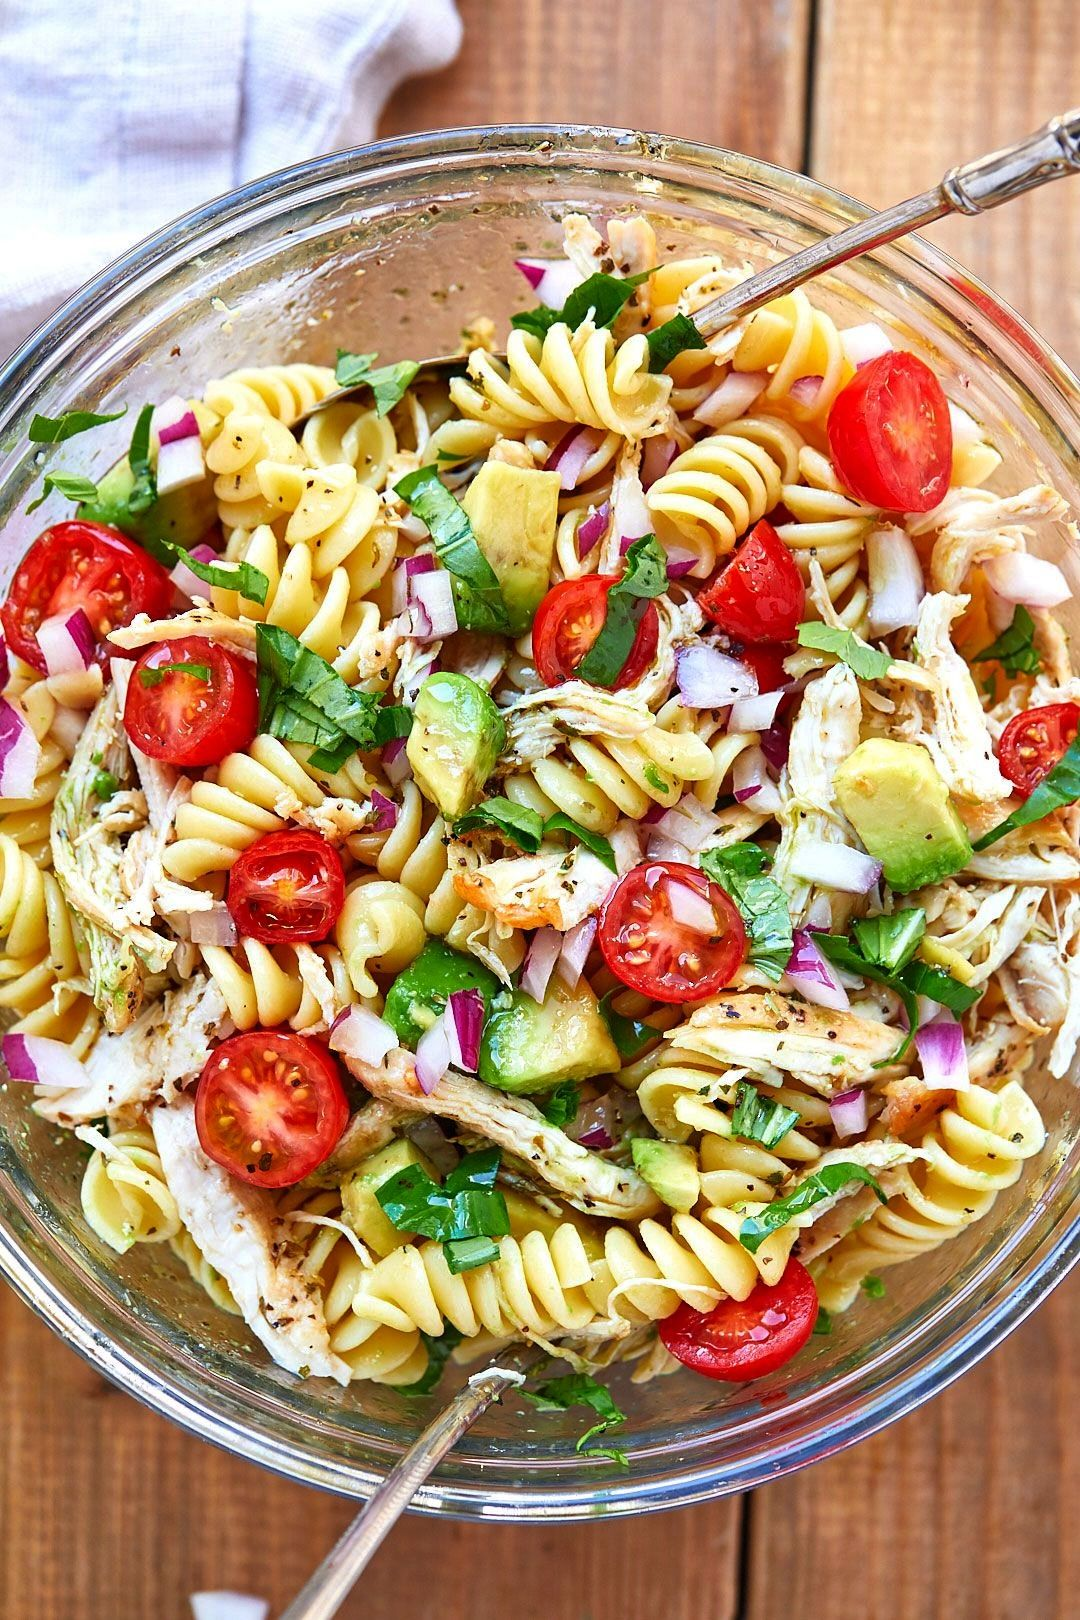 Chicken Pasta Salad - - Packed with flavor, protein and veggies! This healthy chicken pasta salad i